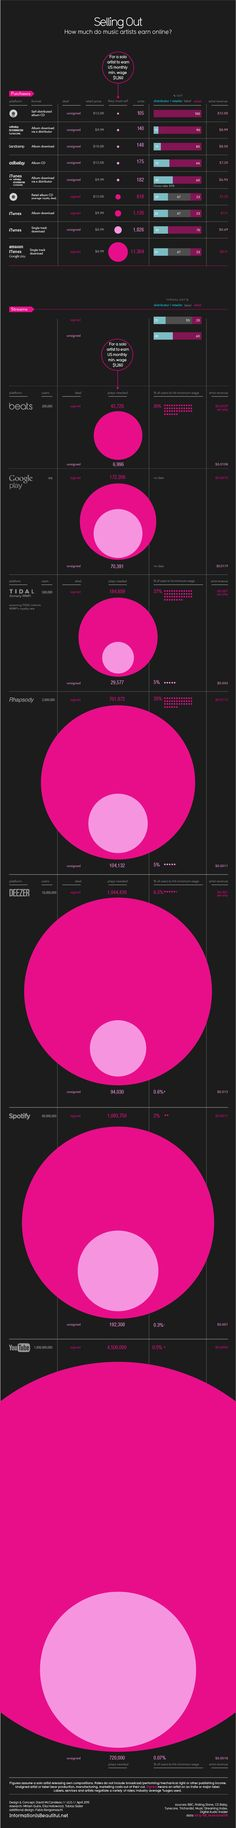 Spotify Infographic